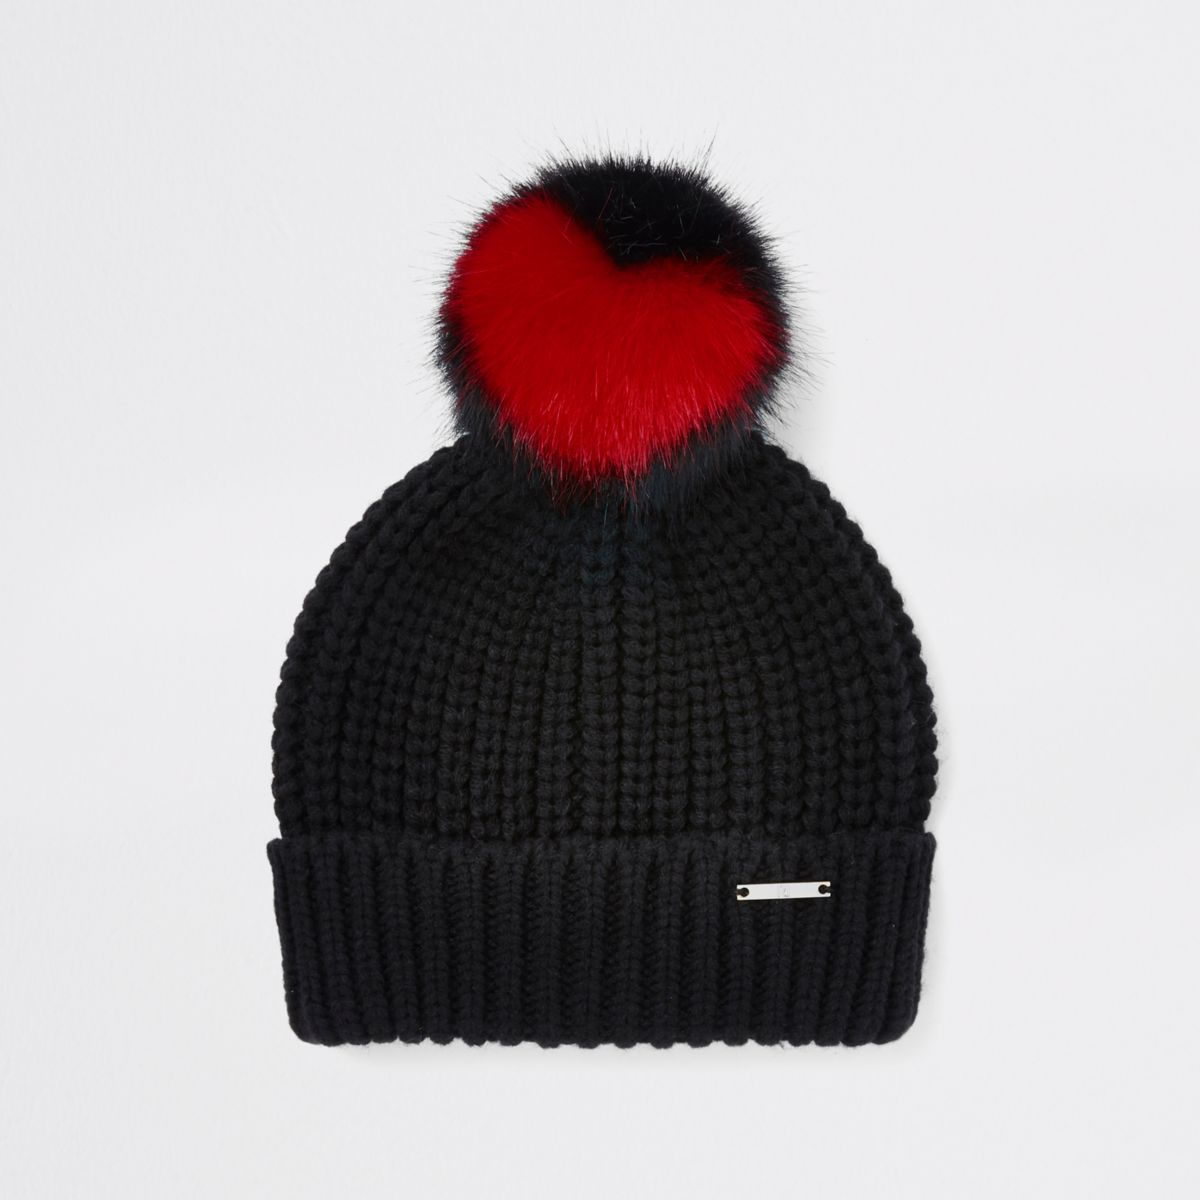 Girls black heart pom pom beanie hat